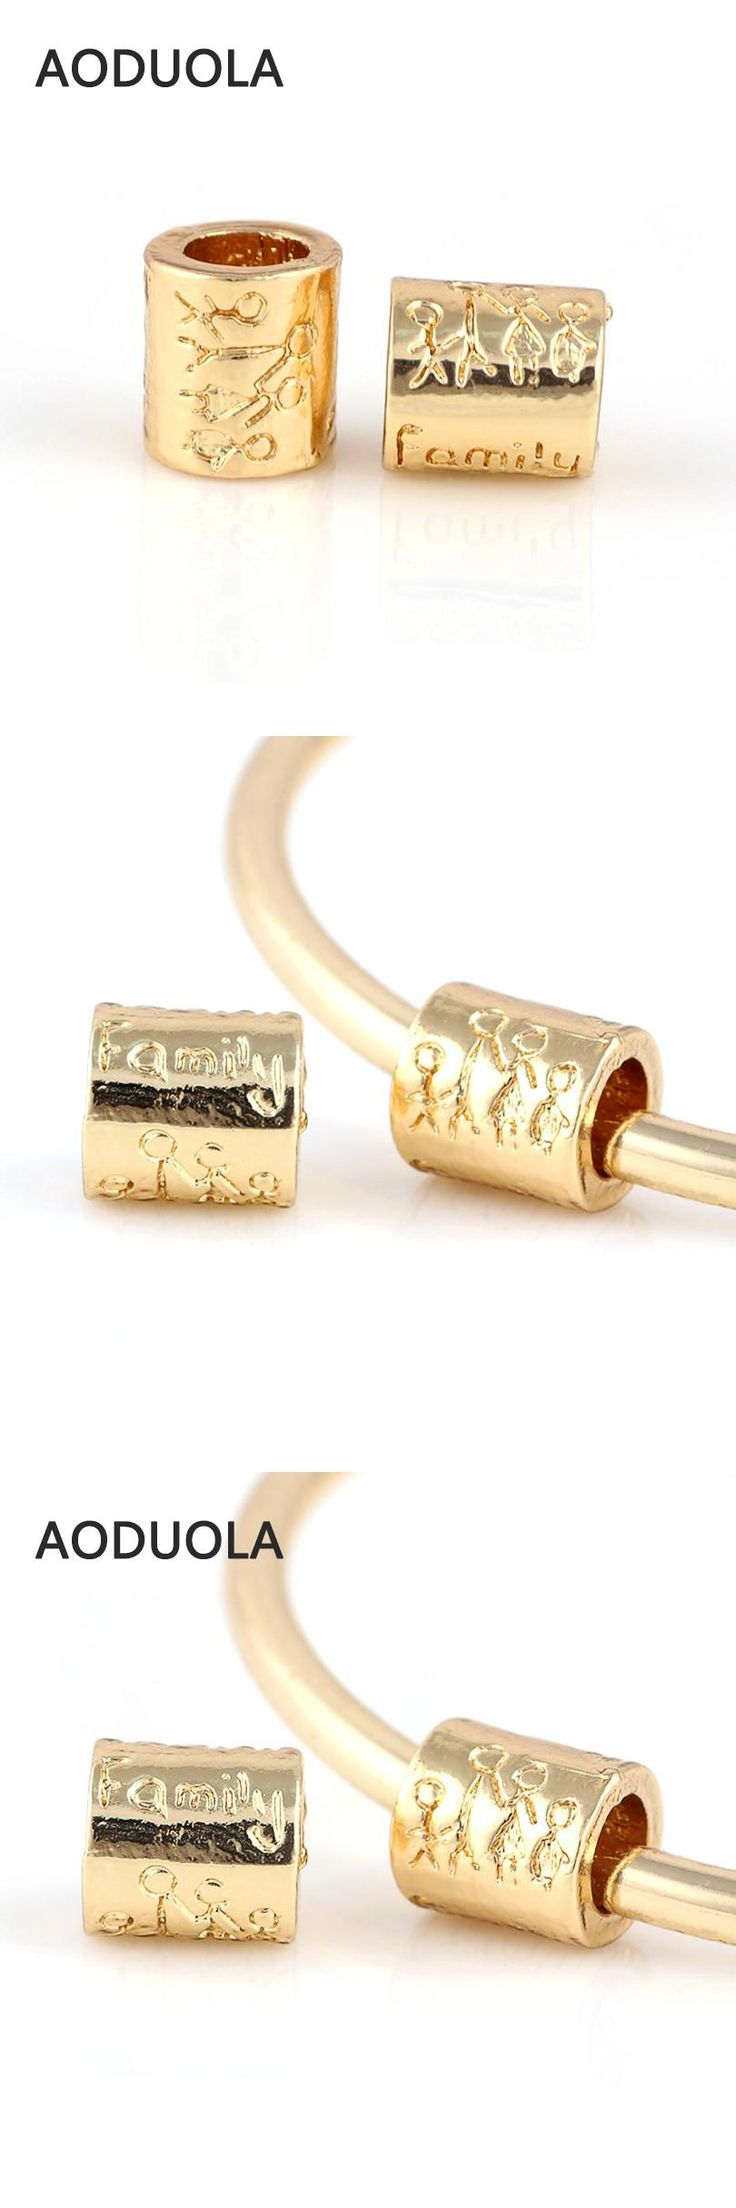 10 Pcs a Lot Gold-Color Family Letter Beads European Big Hole Bead DIY Metal Spacer Charm Fit For Pandora Charms Bracelet